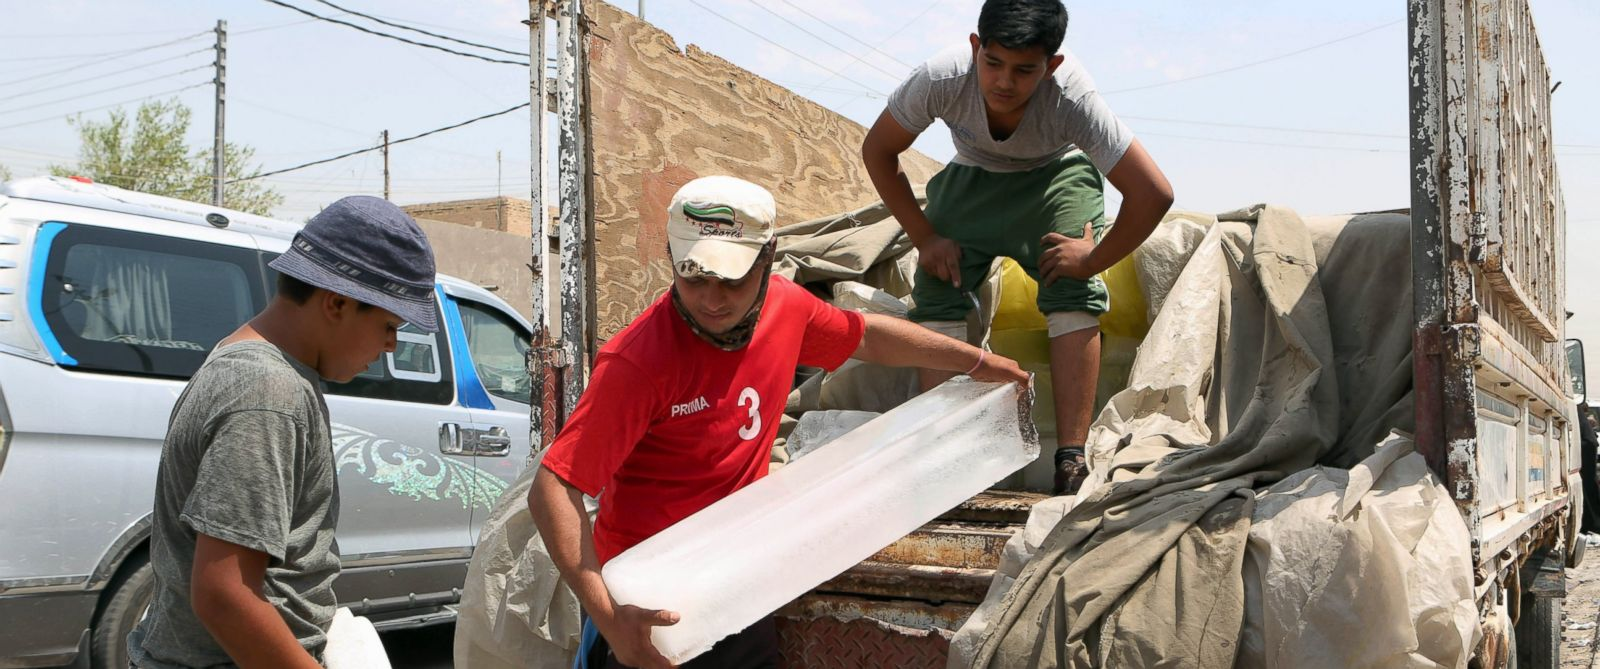 PHOTO: People buy blocks of ice in Basra, southeast of Baghdad, Iraq, July 30, 2015 due to the unprecedented heat wave.